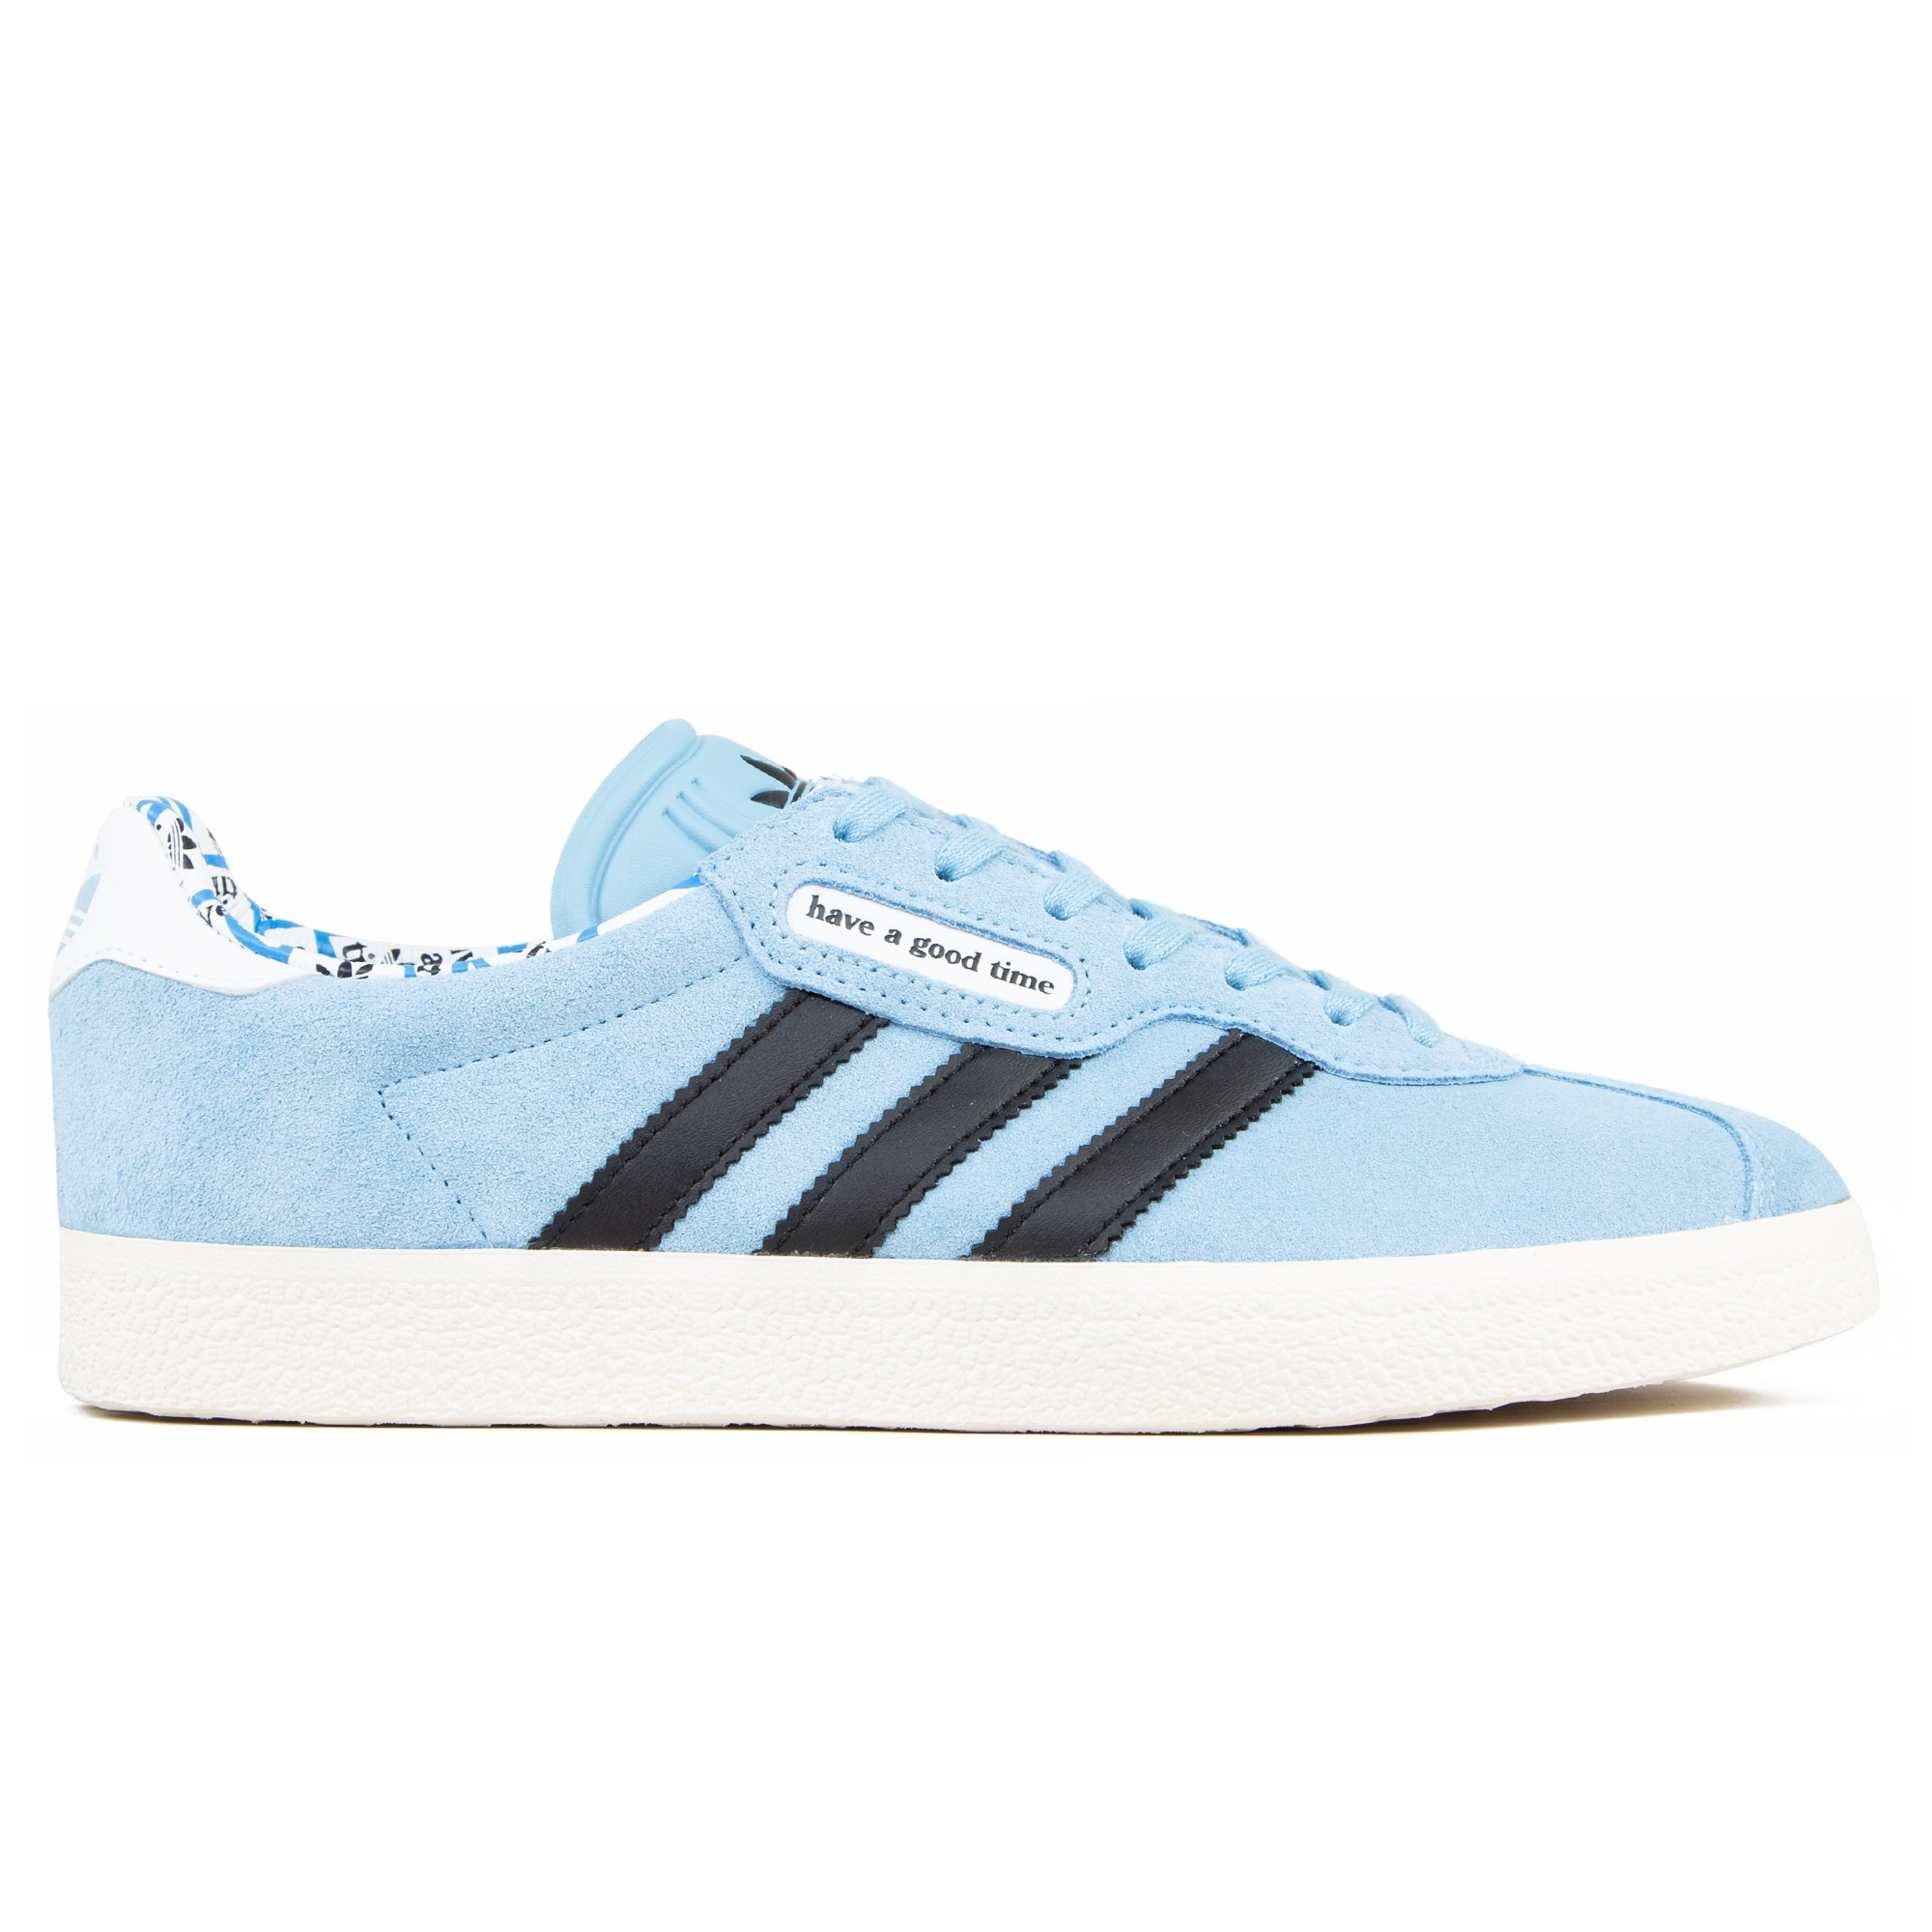 a4a2bf980ee adidas Originals x have a good time Gazelle Super (Clear Blue Core ...